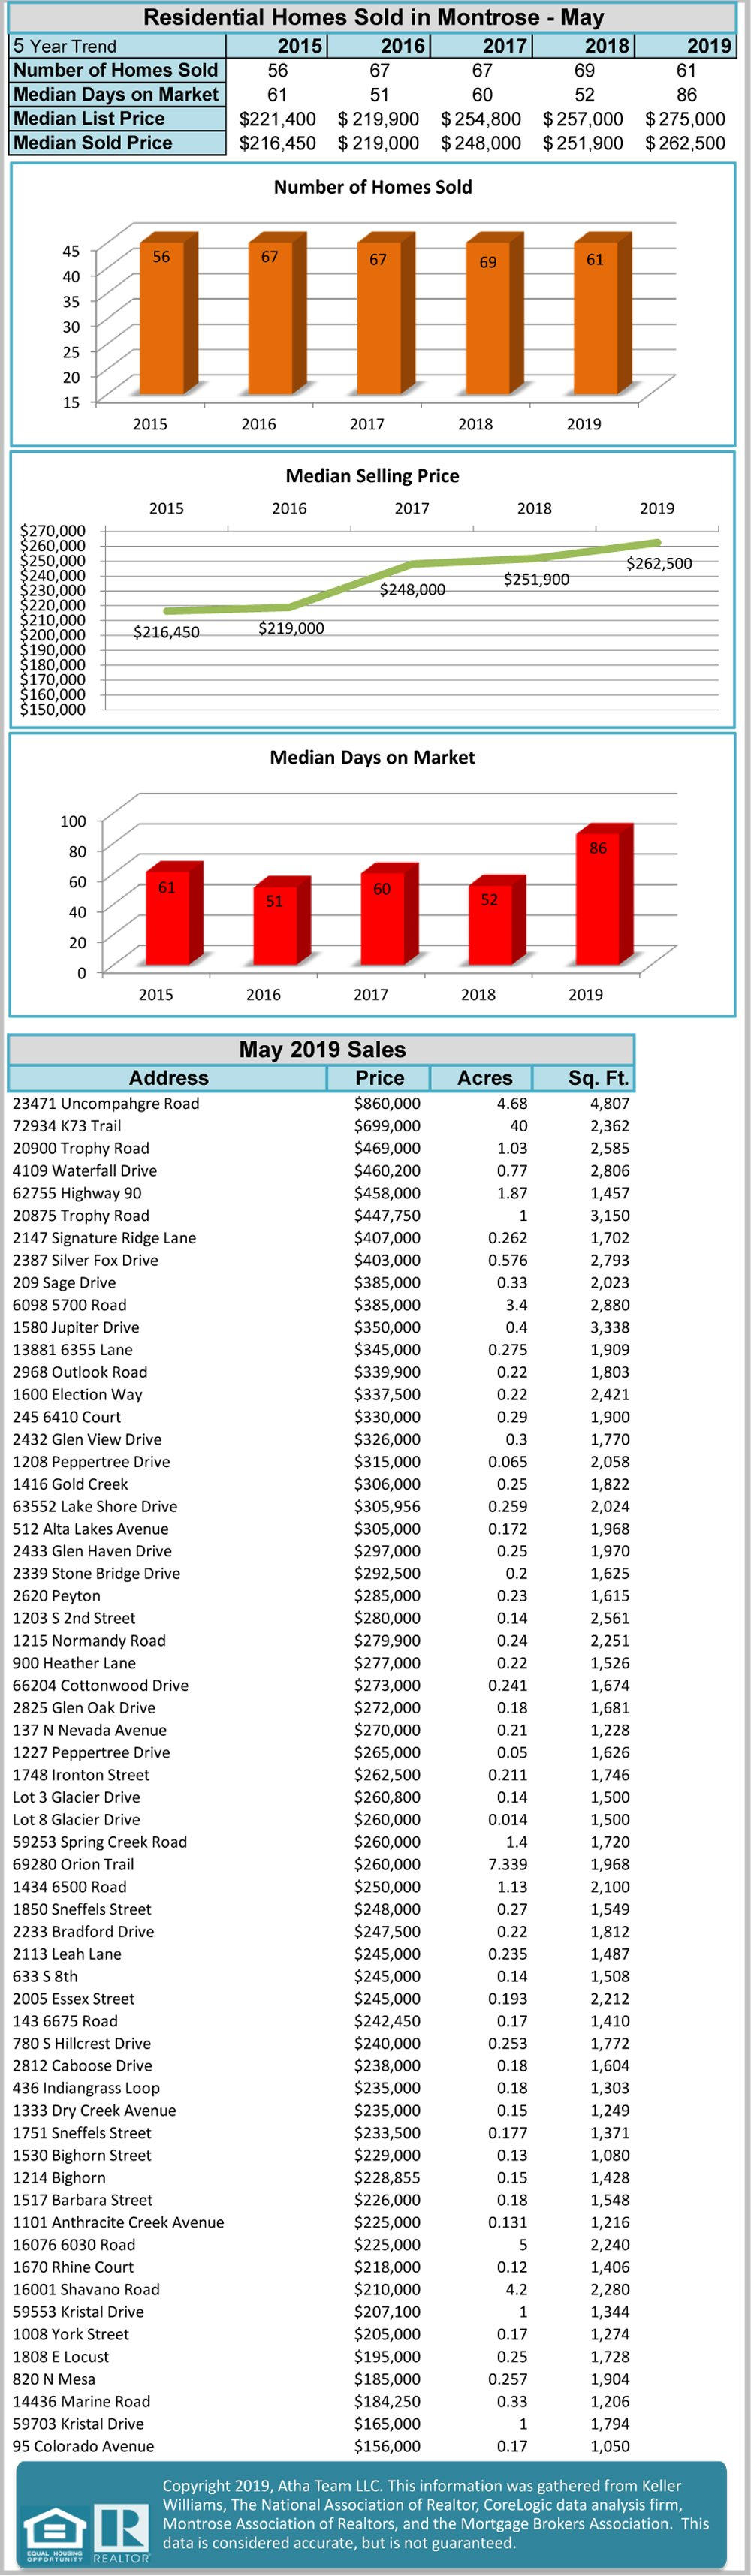 Atha Team Keller Williams Colorado West Realty Market Statistics - 06_2019_Stats